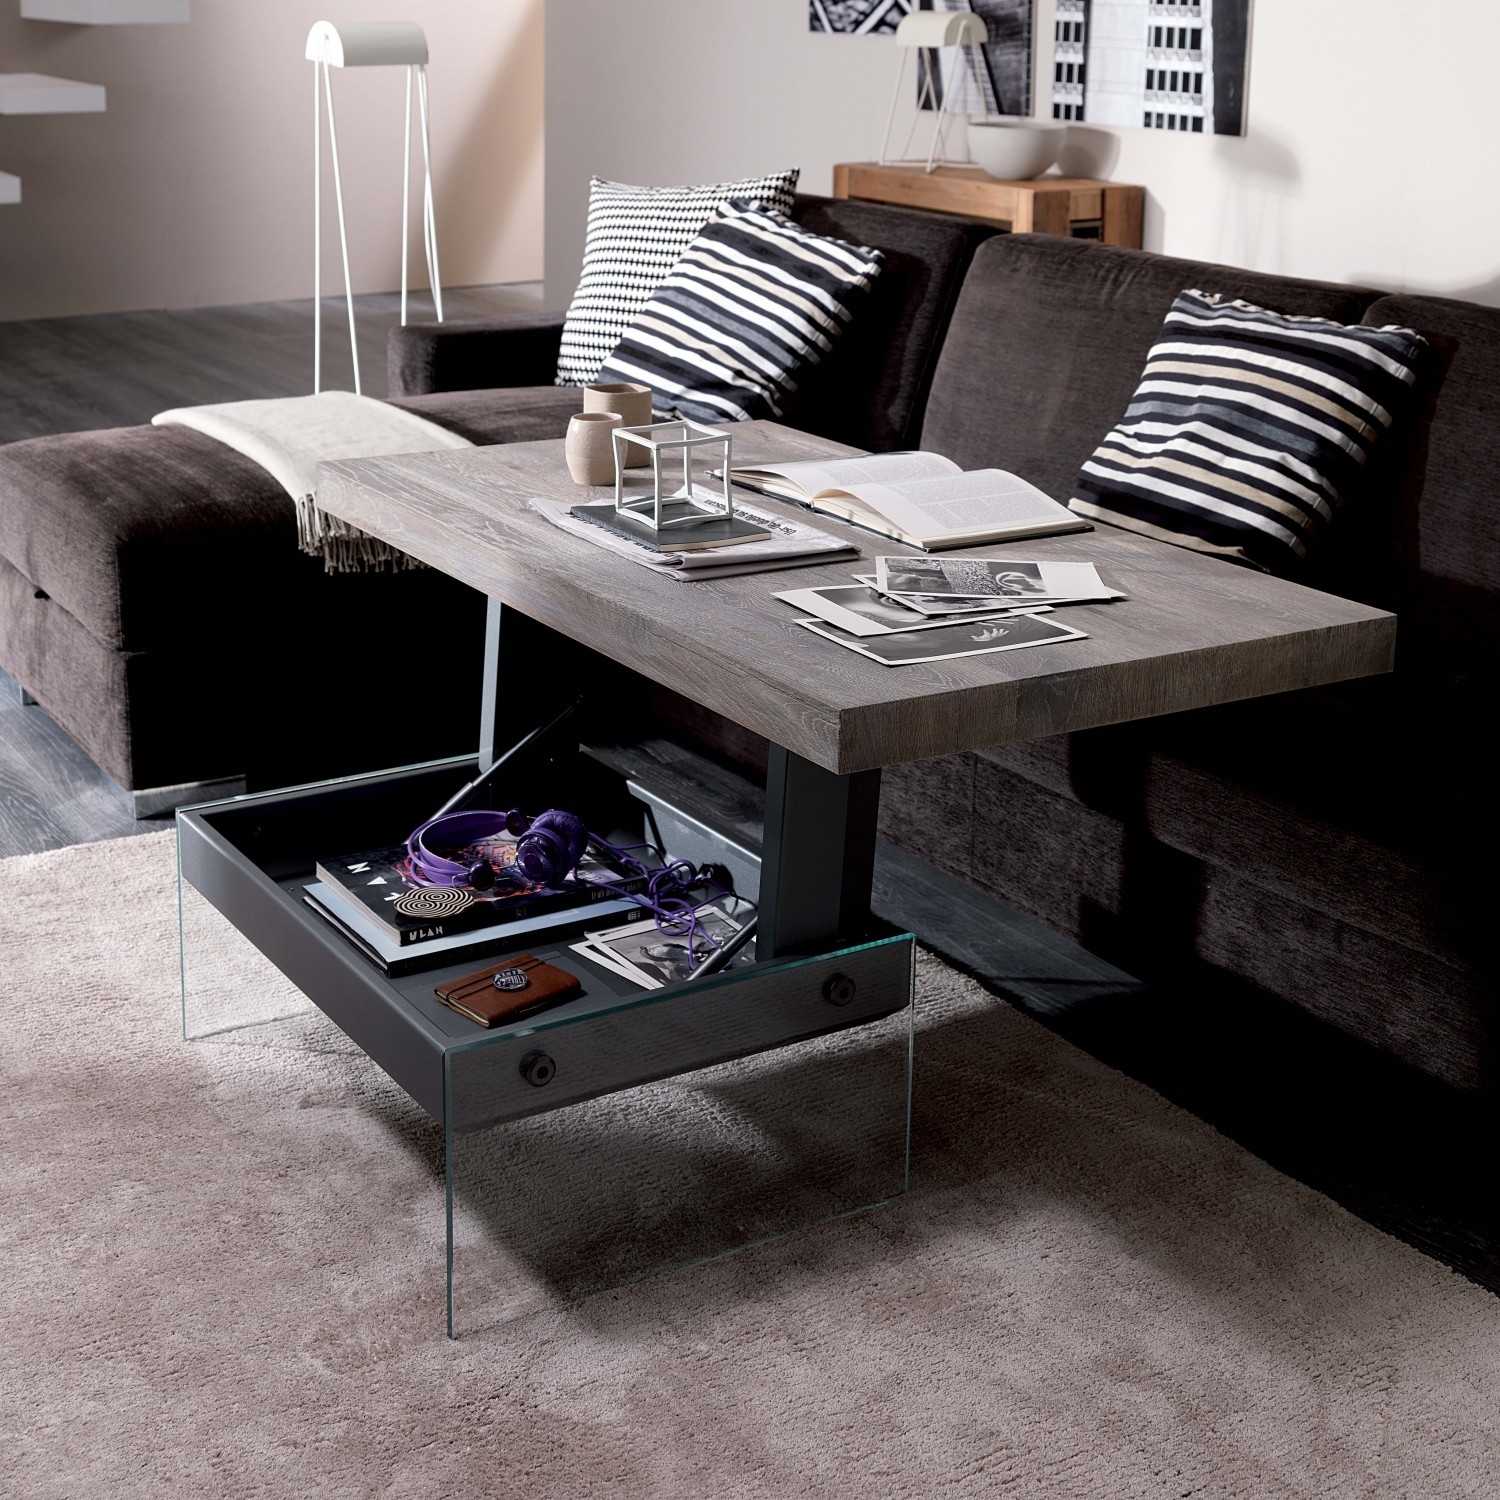 Ikea Coffee Table Uk Royals Courage